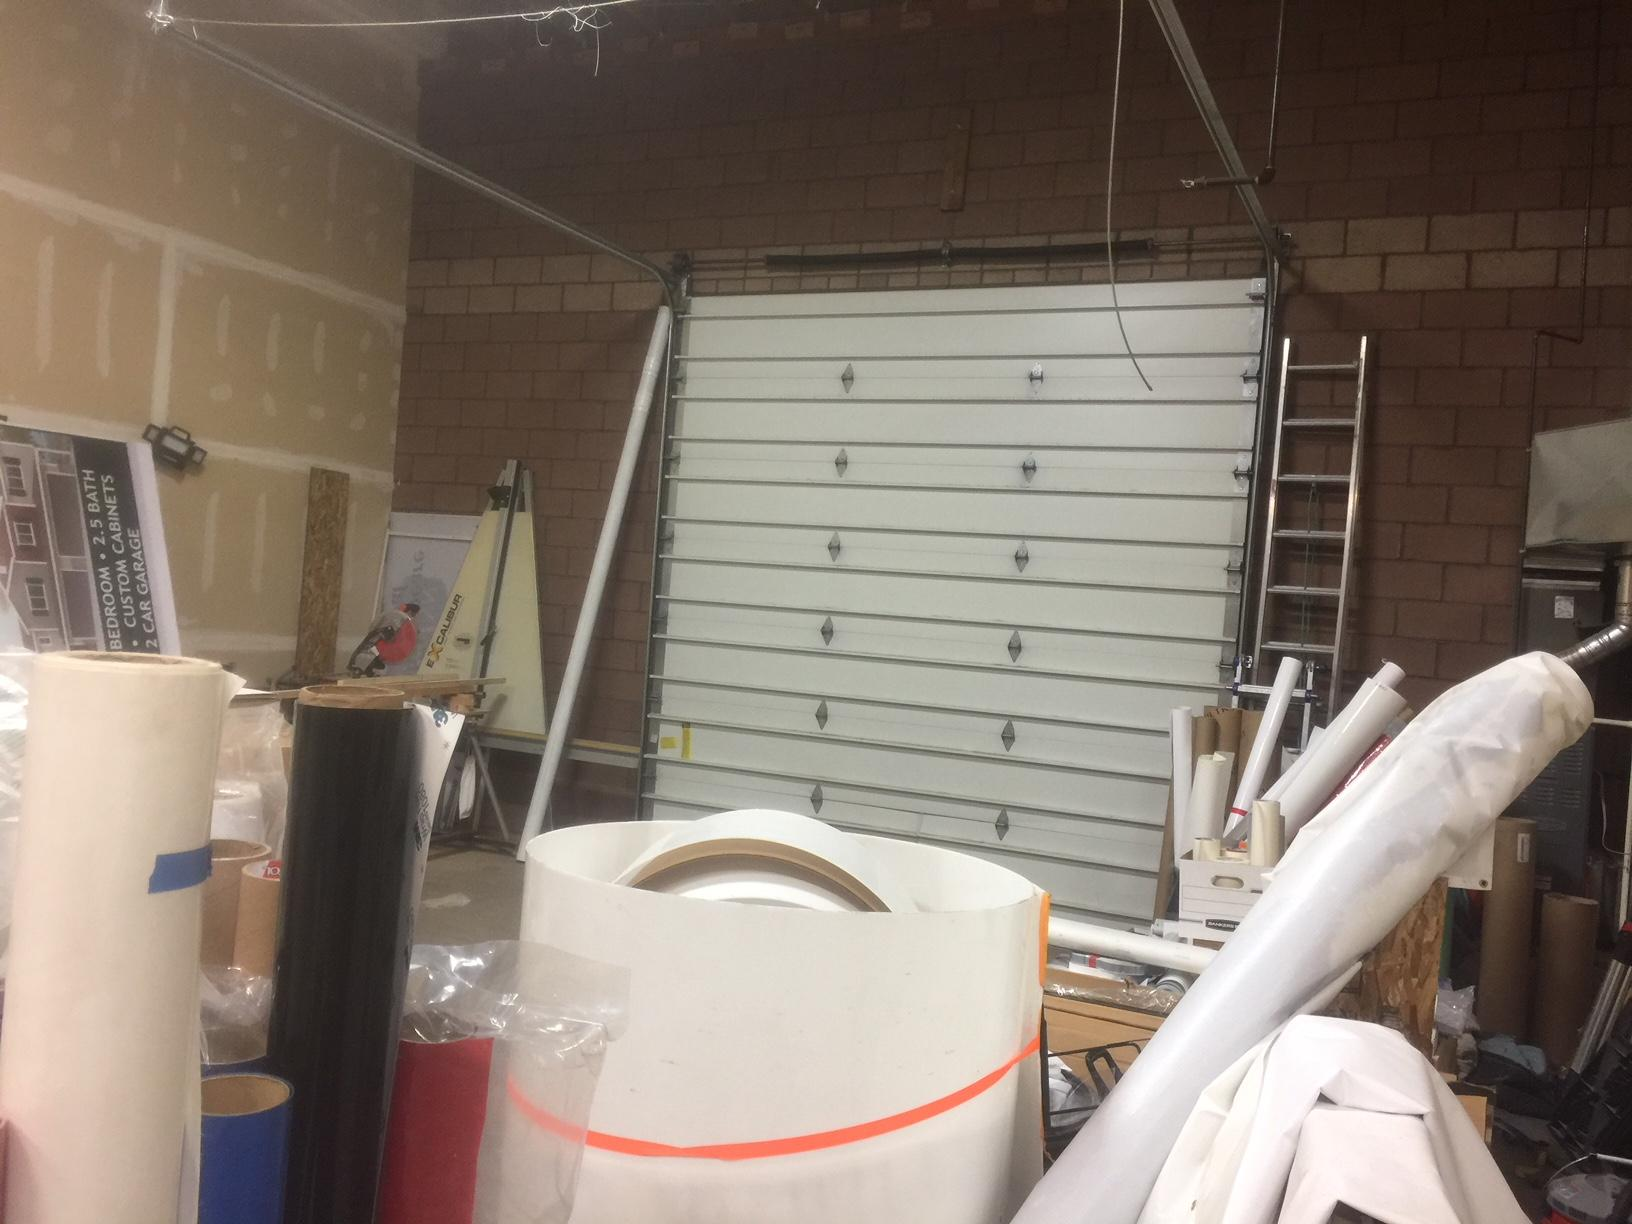 Very nice office warehouse that has a big reception work area and 2 offices and a conference room on the 2nd level. The warehouse is large and very tall ceilings with a large overhead door. Main floor is 2555 sq ft. also offered for sale at $285,000.